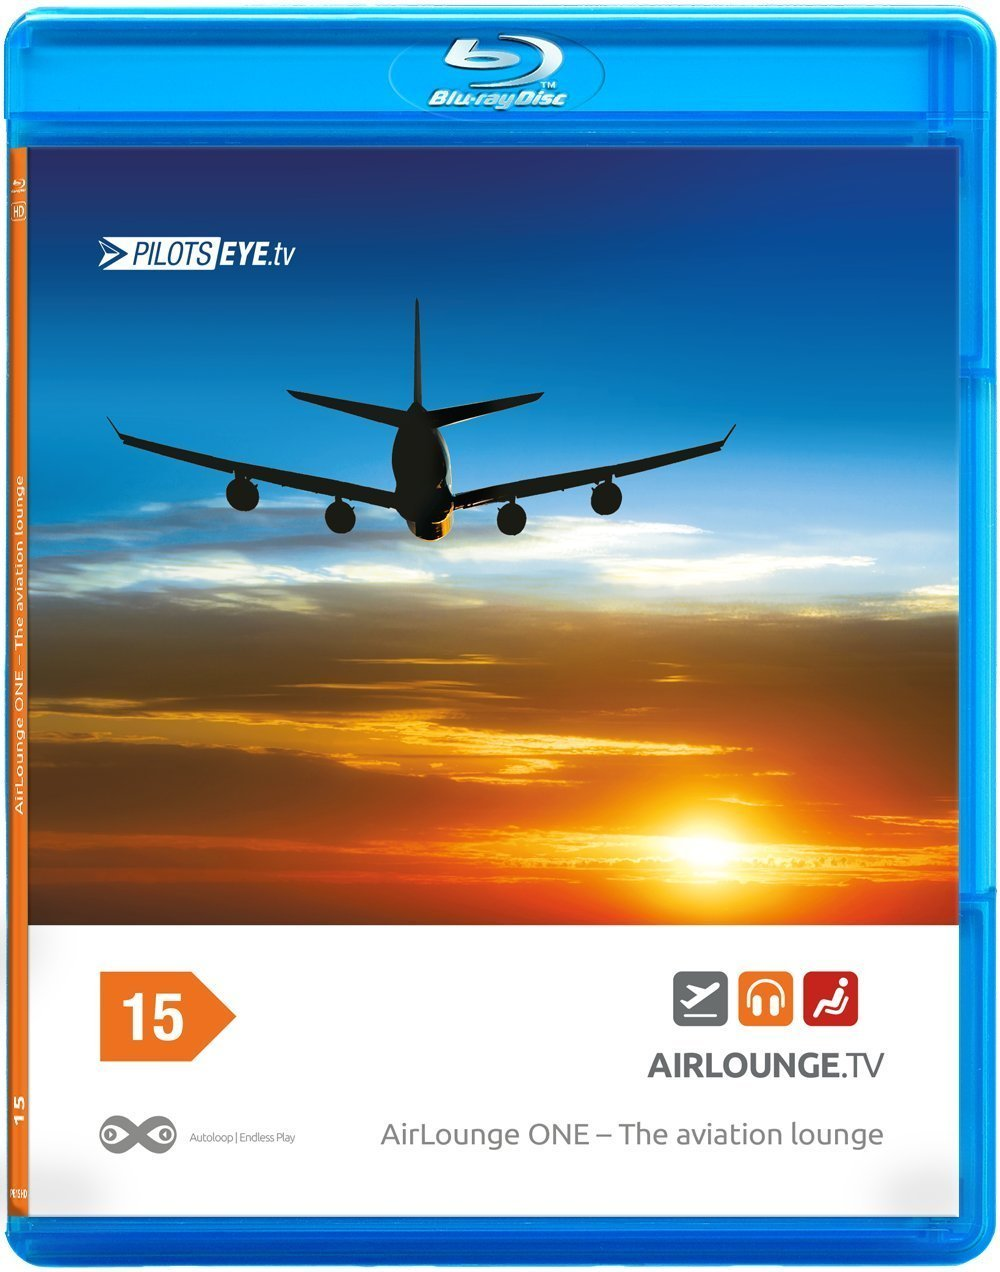 PilotsEYE.tv | AIRLOUNGE ONE |:| Blu-ray Disc® |:| The aviation Lounge - 80min Aviation Ambience [Reino Unido] [Blu-ray]